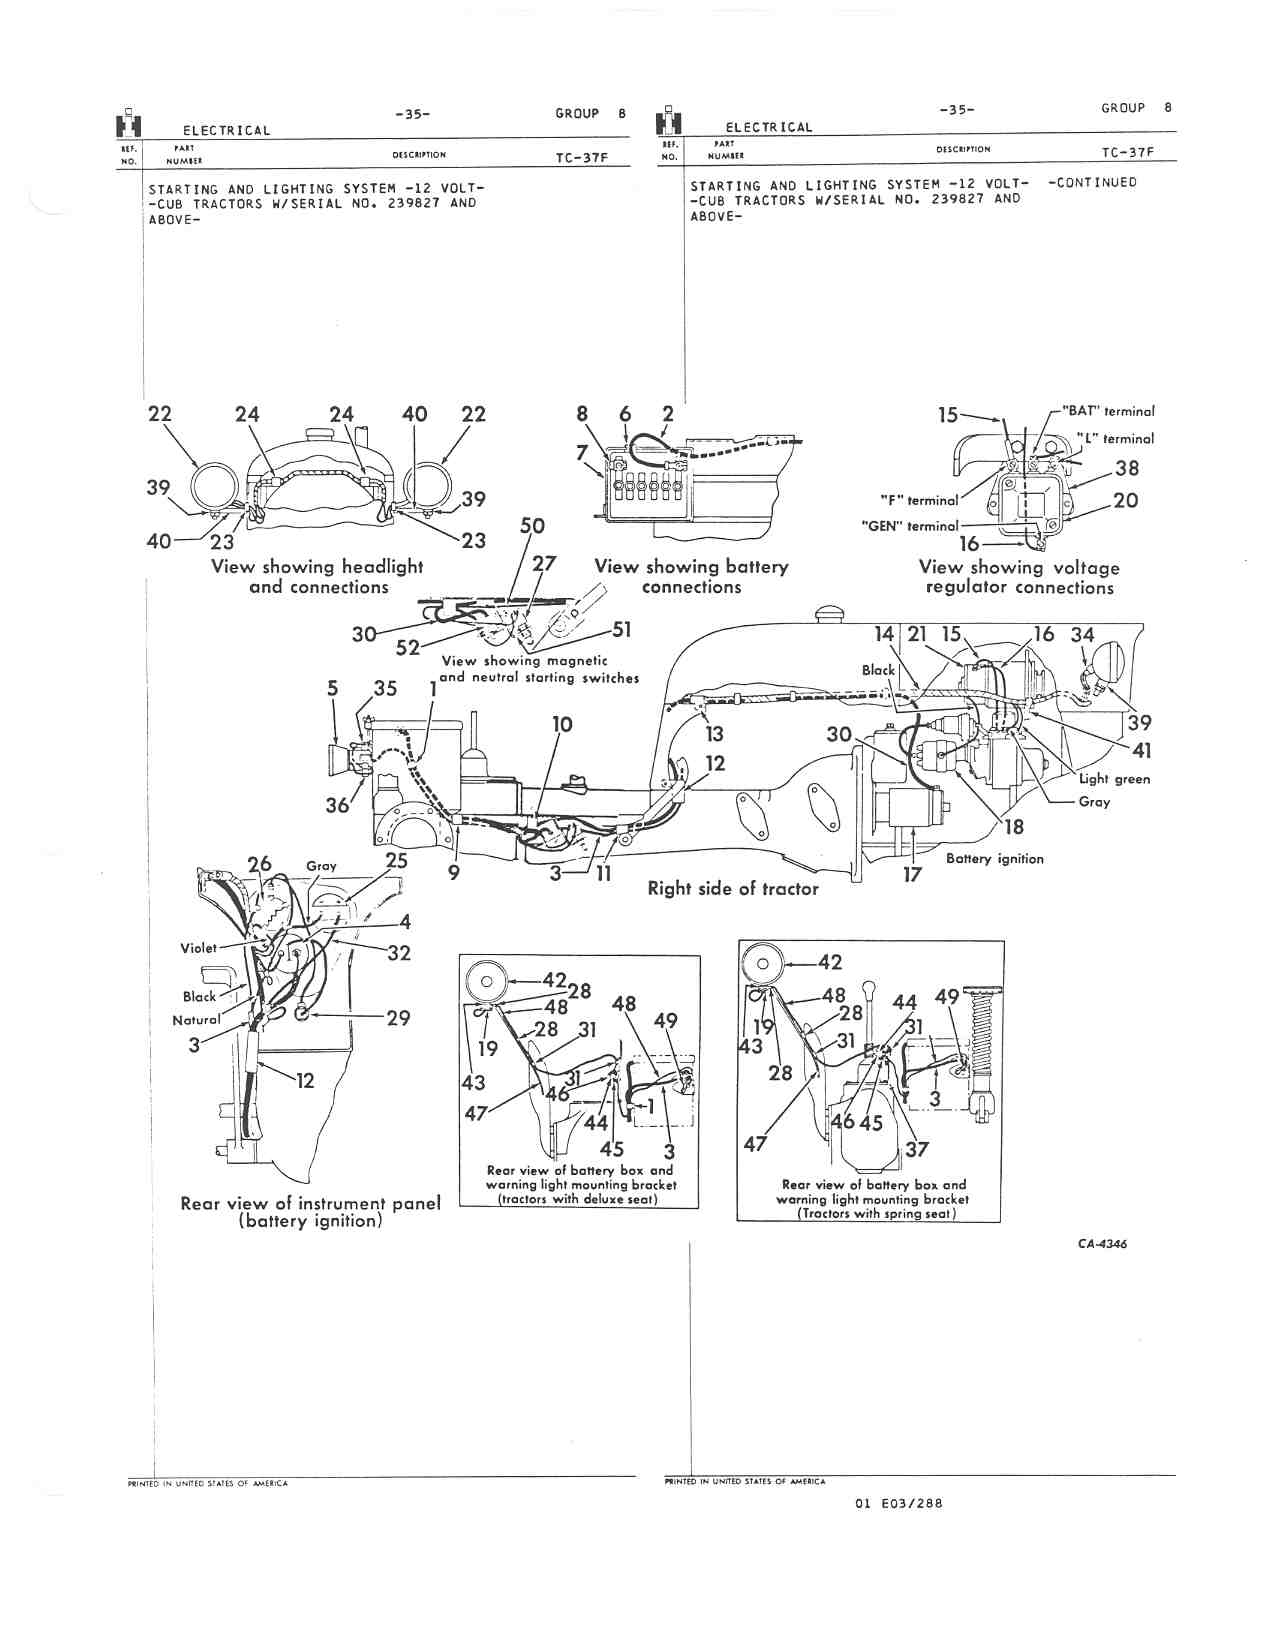 H Wiring Diagram Library Ruud Model Furnace Ugwh095bjr